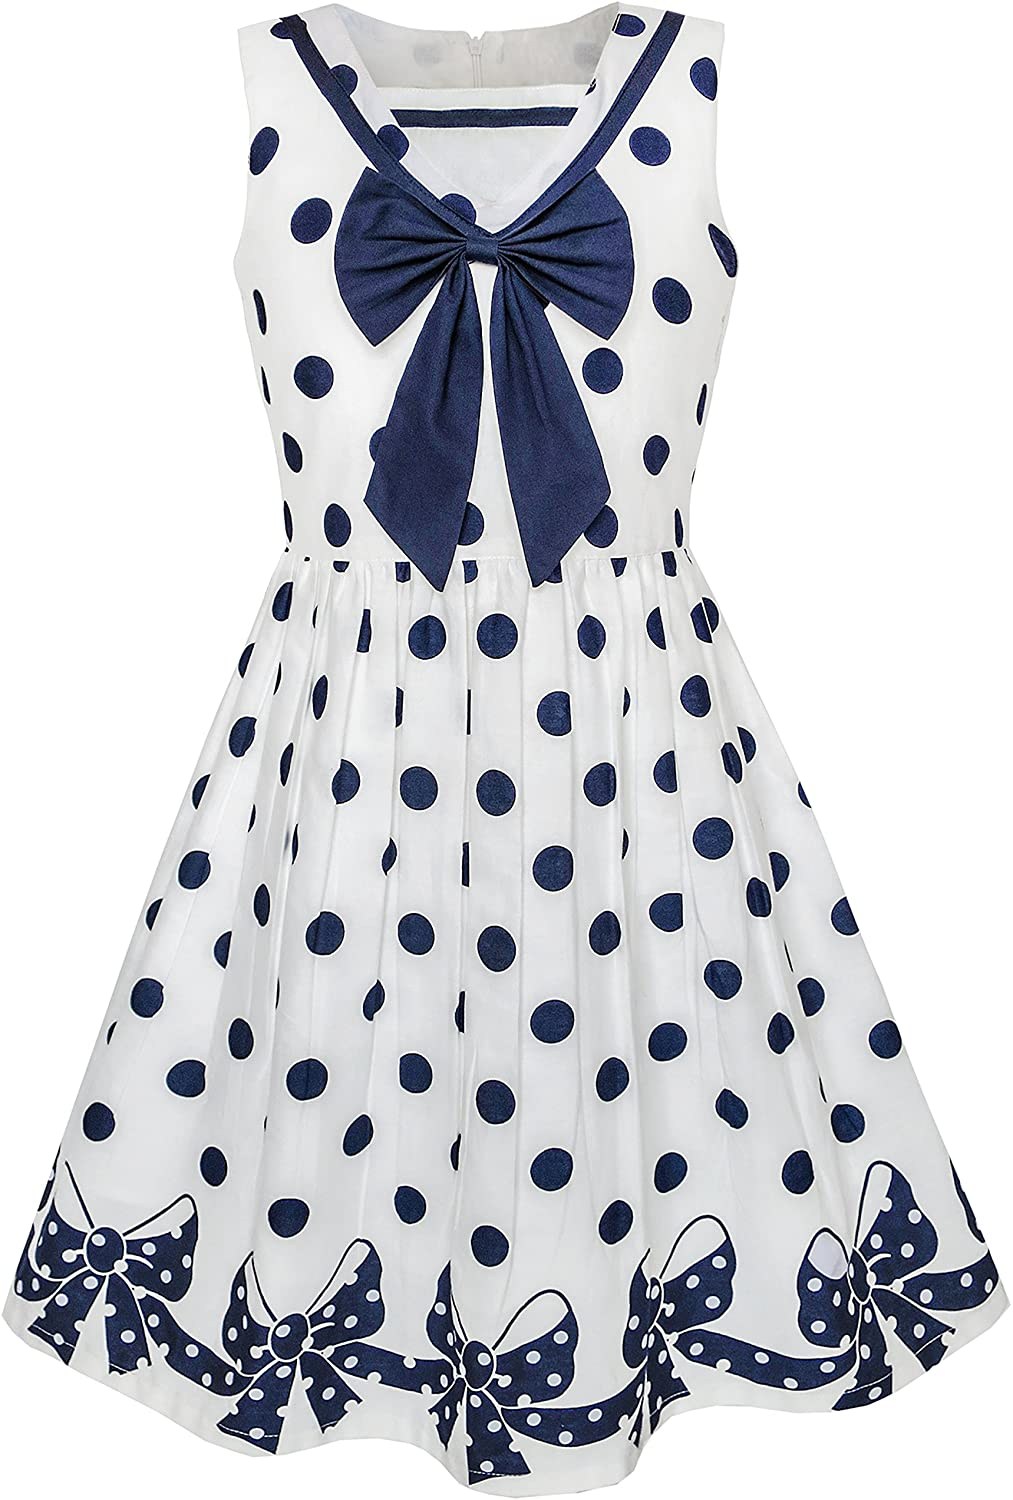 Sunny Fashion Girls Dress Navy Blue Dot Bow Tie Back School Size 5-12